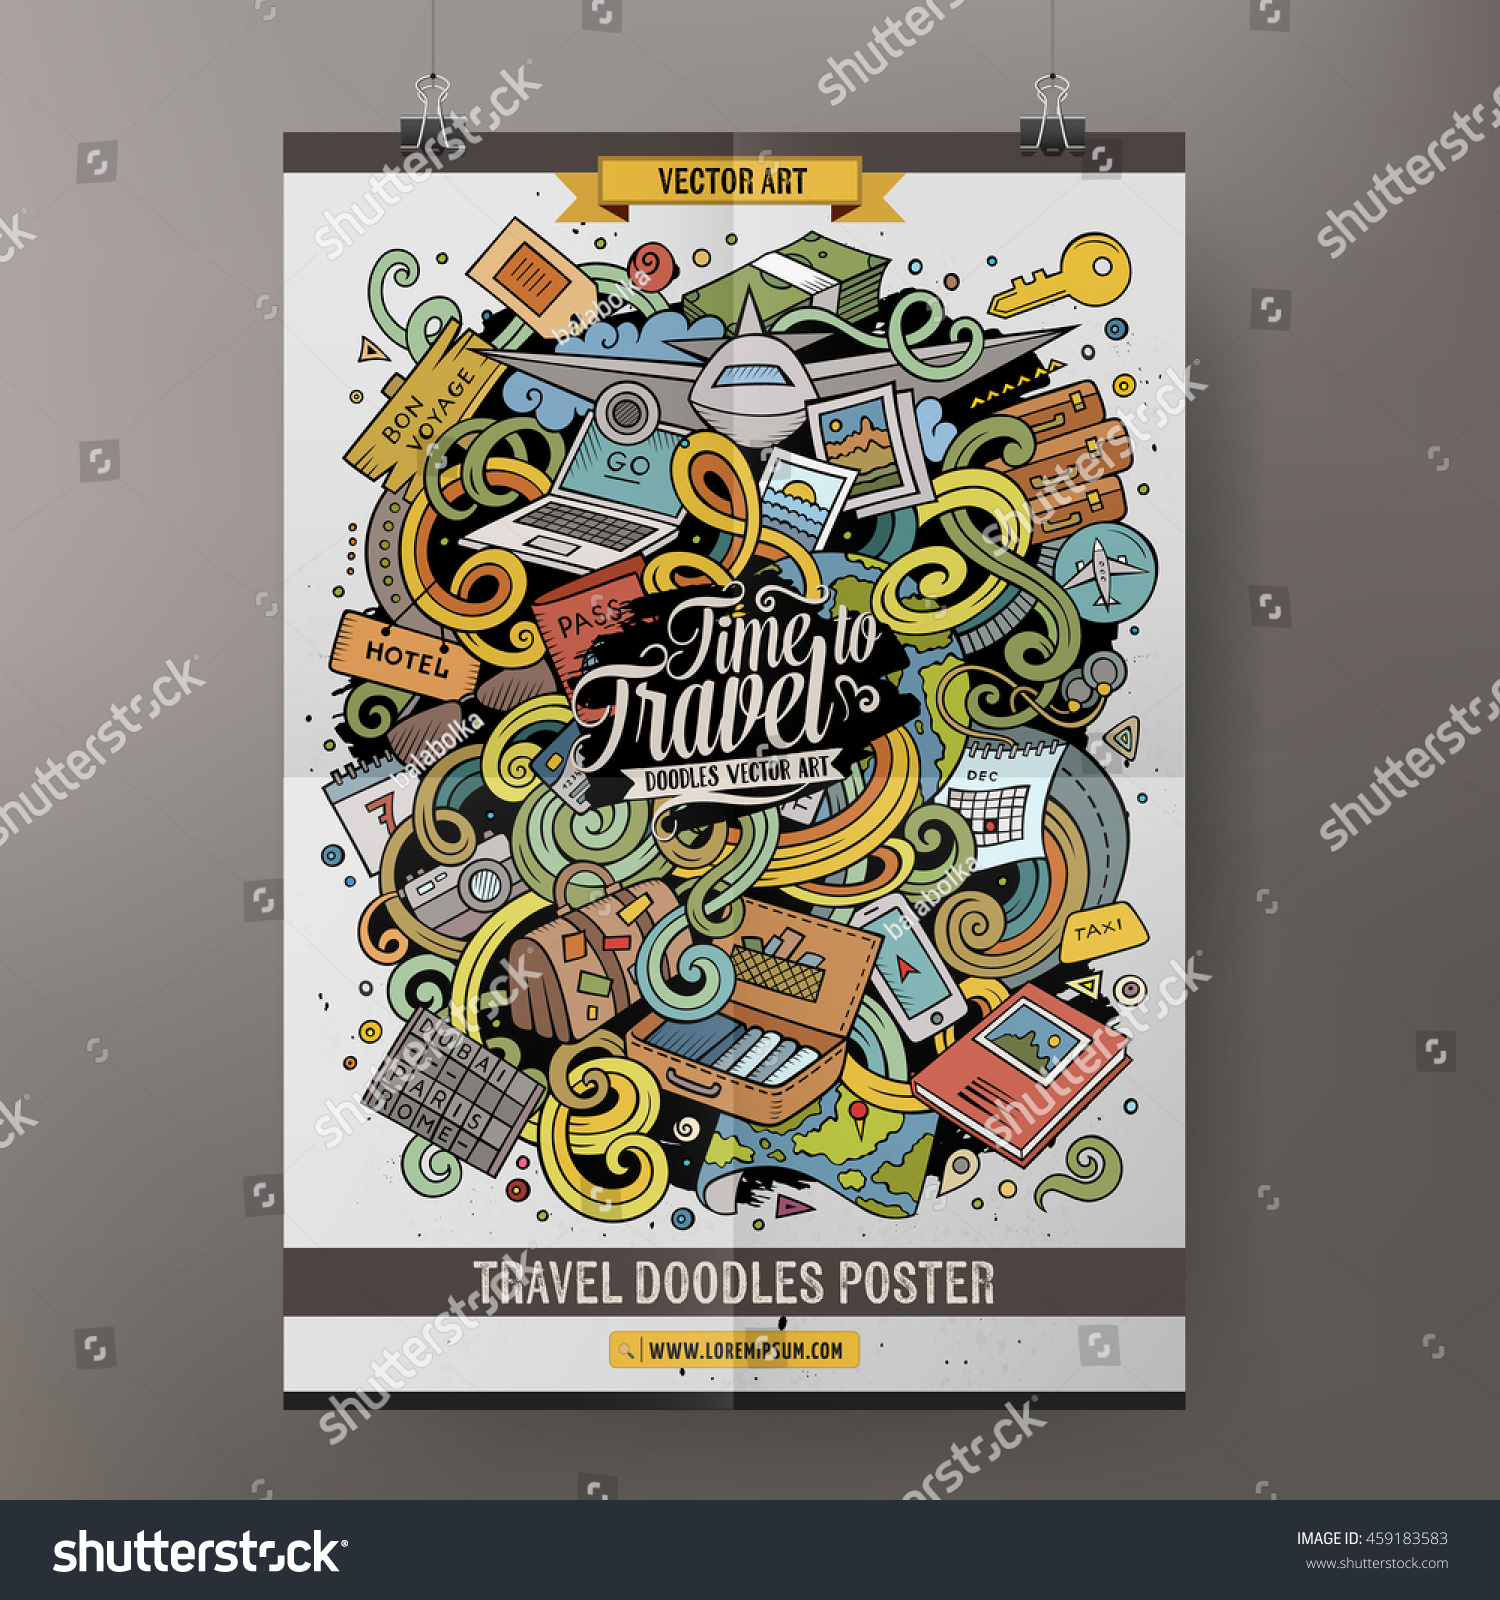 Cartoon colorful hand drawn doodles Traveling poster template Very detailed with lots of objects illustration Funny vector artwork Corporate identity design